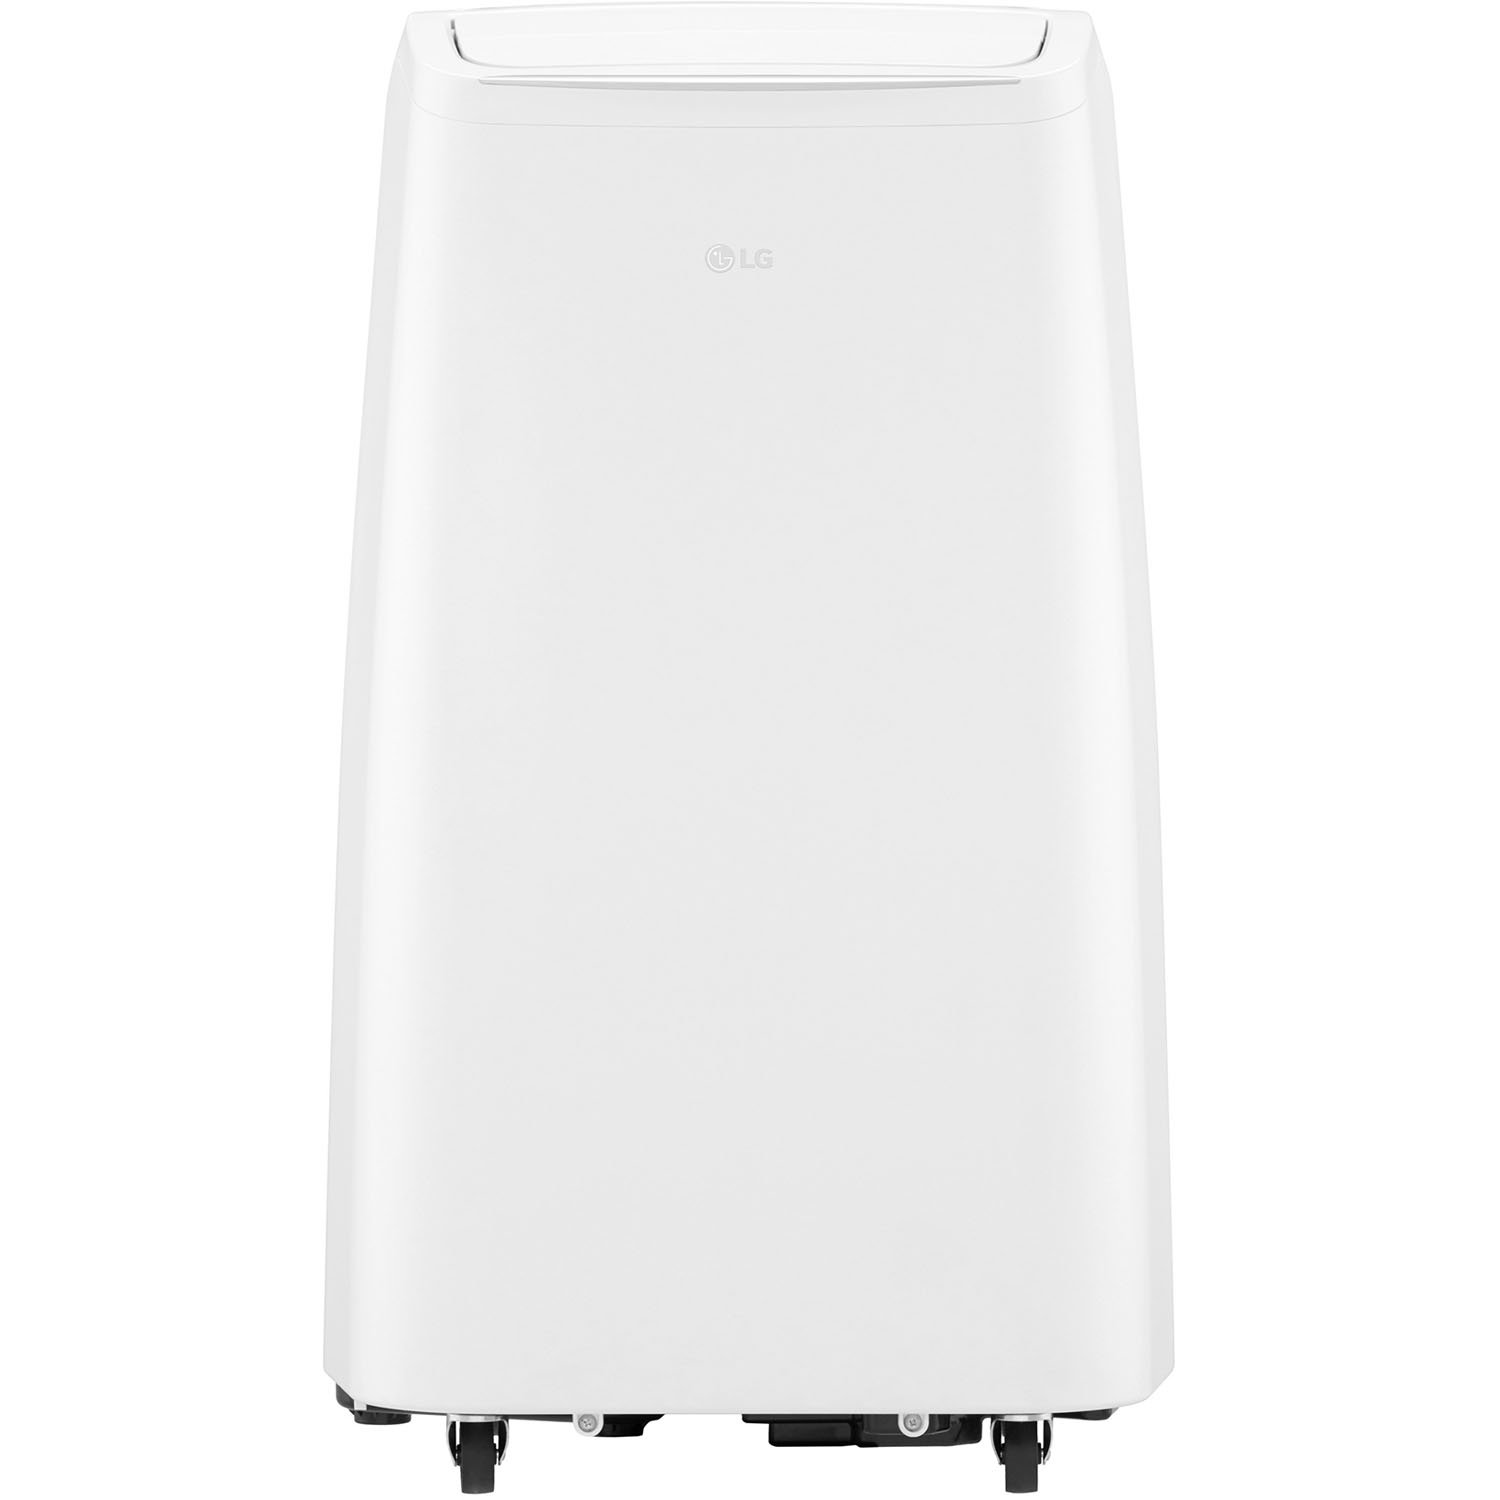 LG LP0818WNR Portable, White 115V Air Conditioner, Rooms up to 200-Sq. Ft, by LG